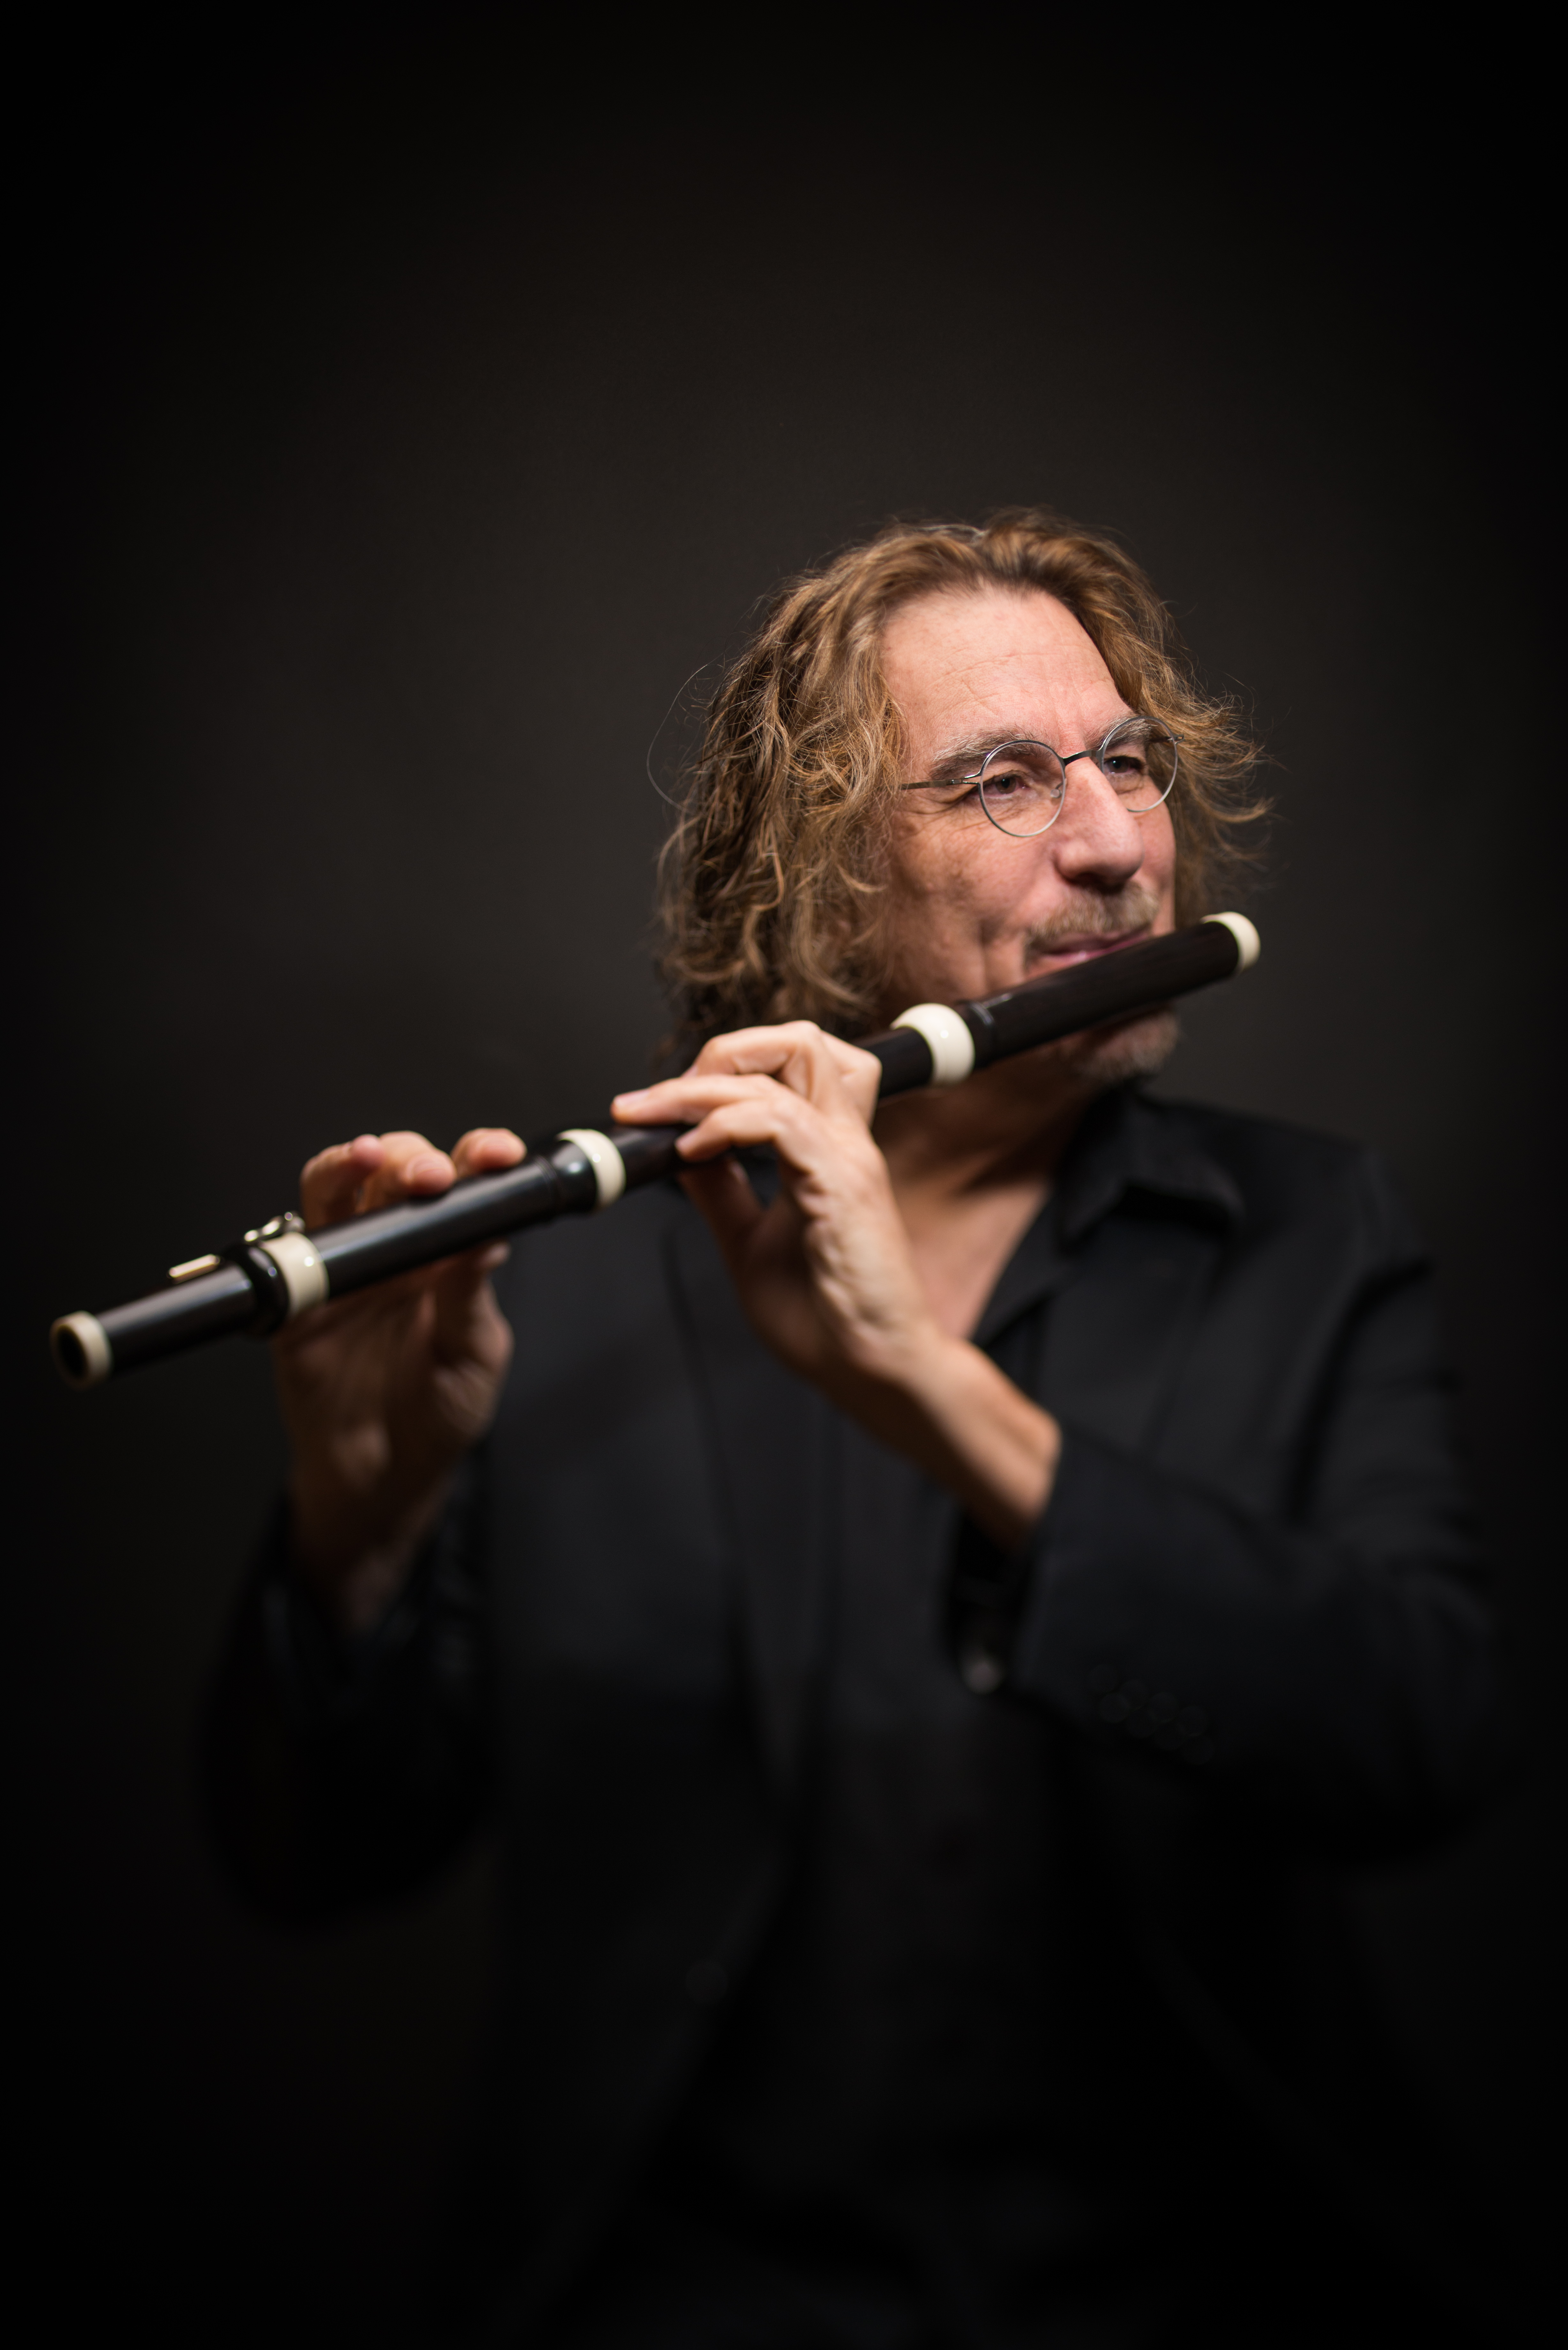 Baroque flautist STEPHEN SCHULTZ, guest artist with GLB on 17 April 2016 [Photo © by Stephen Schultz; used with permission]